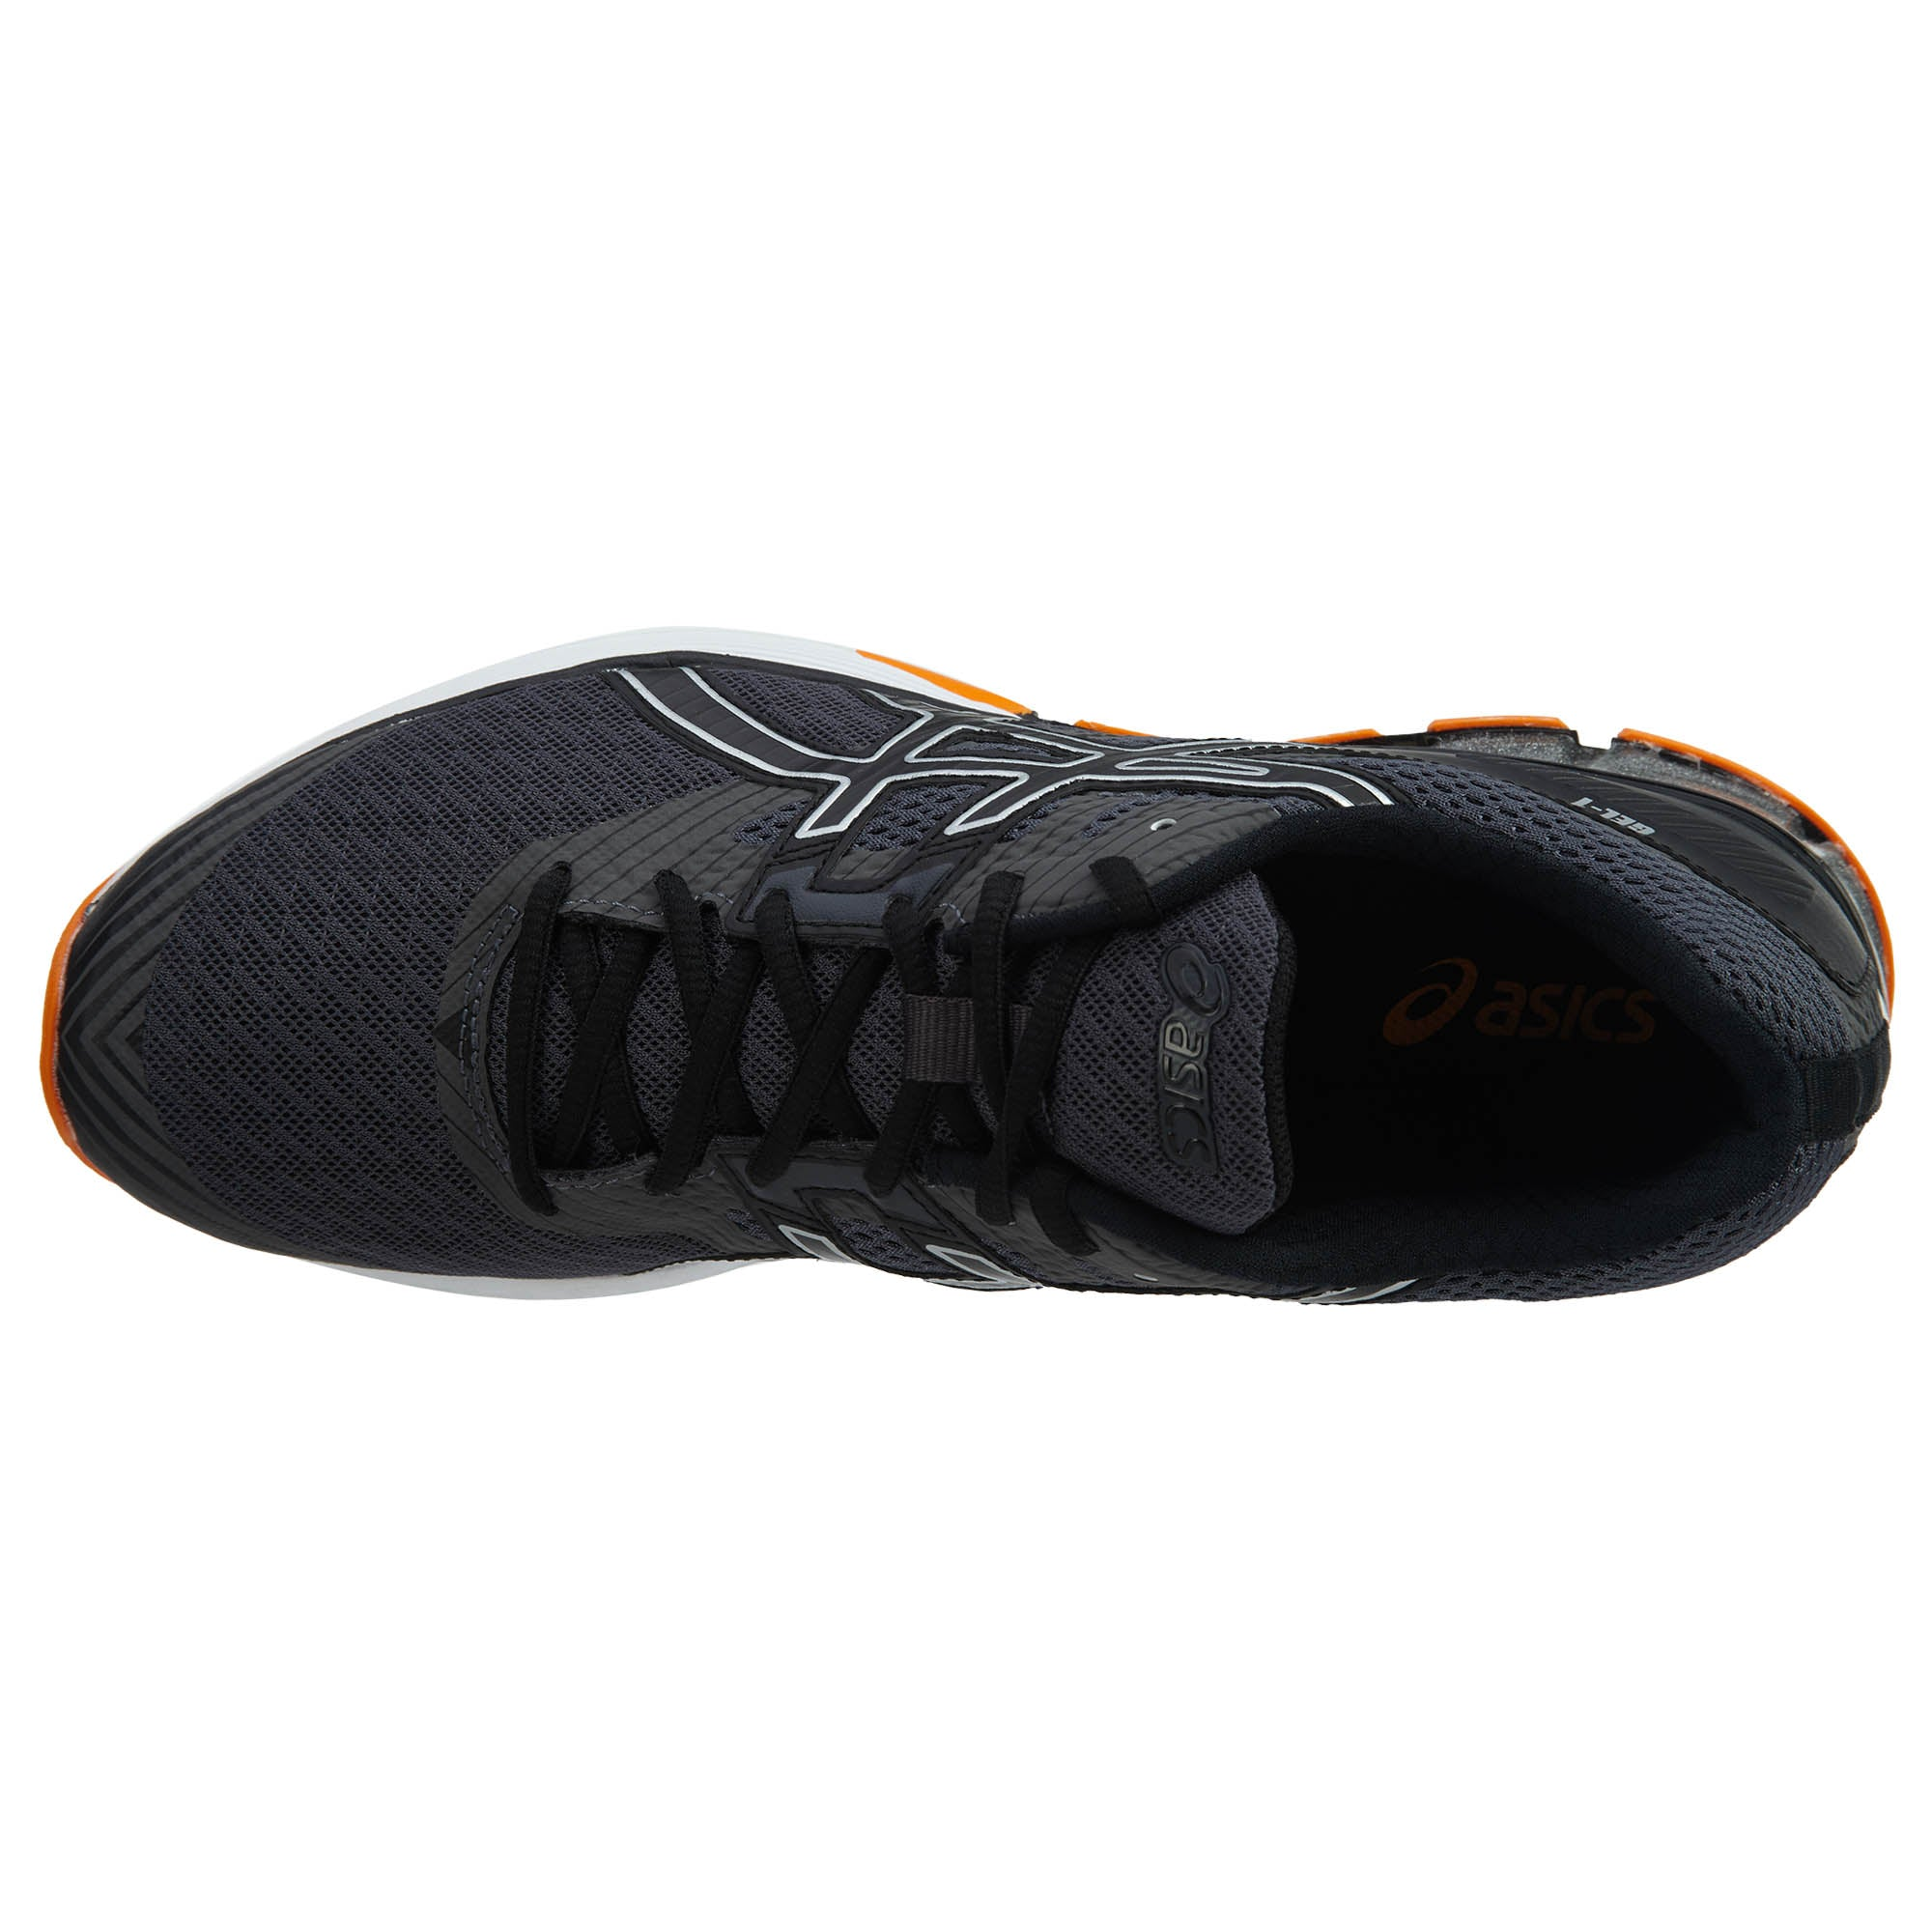 largest selection of 2019 shop for best dirt cheap Asics Gel-1 Mens Style : T71aq – TheEagleShoes